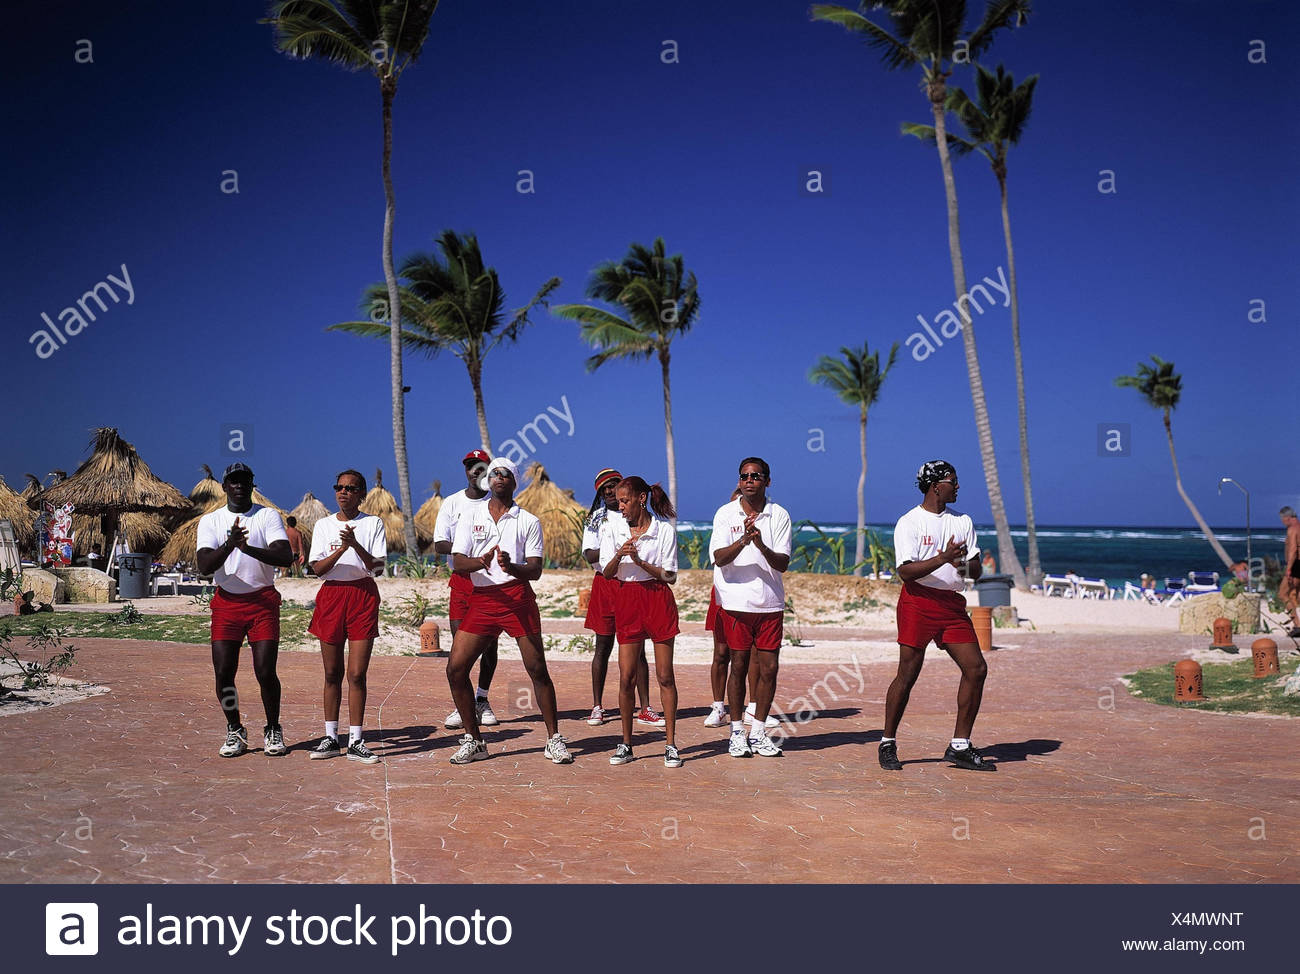 b42d70a4d The Dominican Republic, Punta Cana, Bavaro, hotel facility, hosts, group,